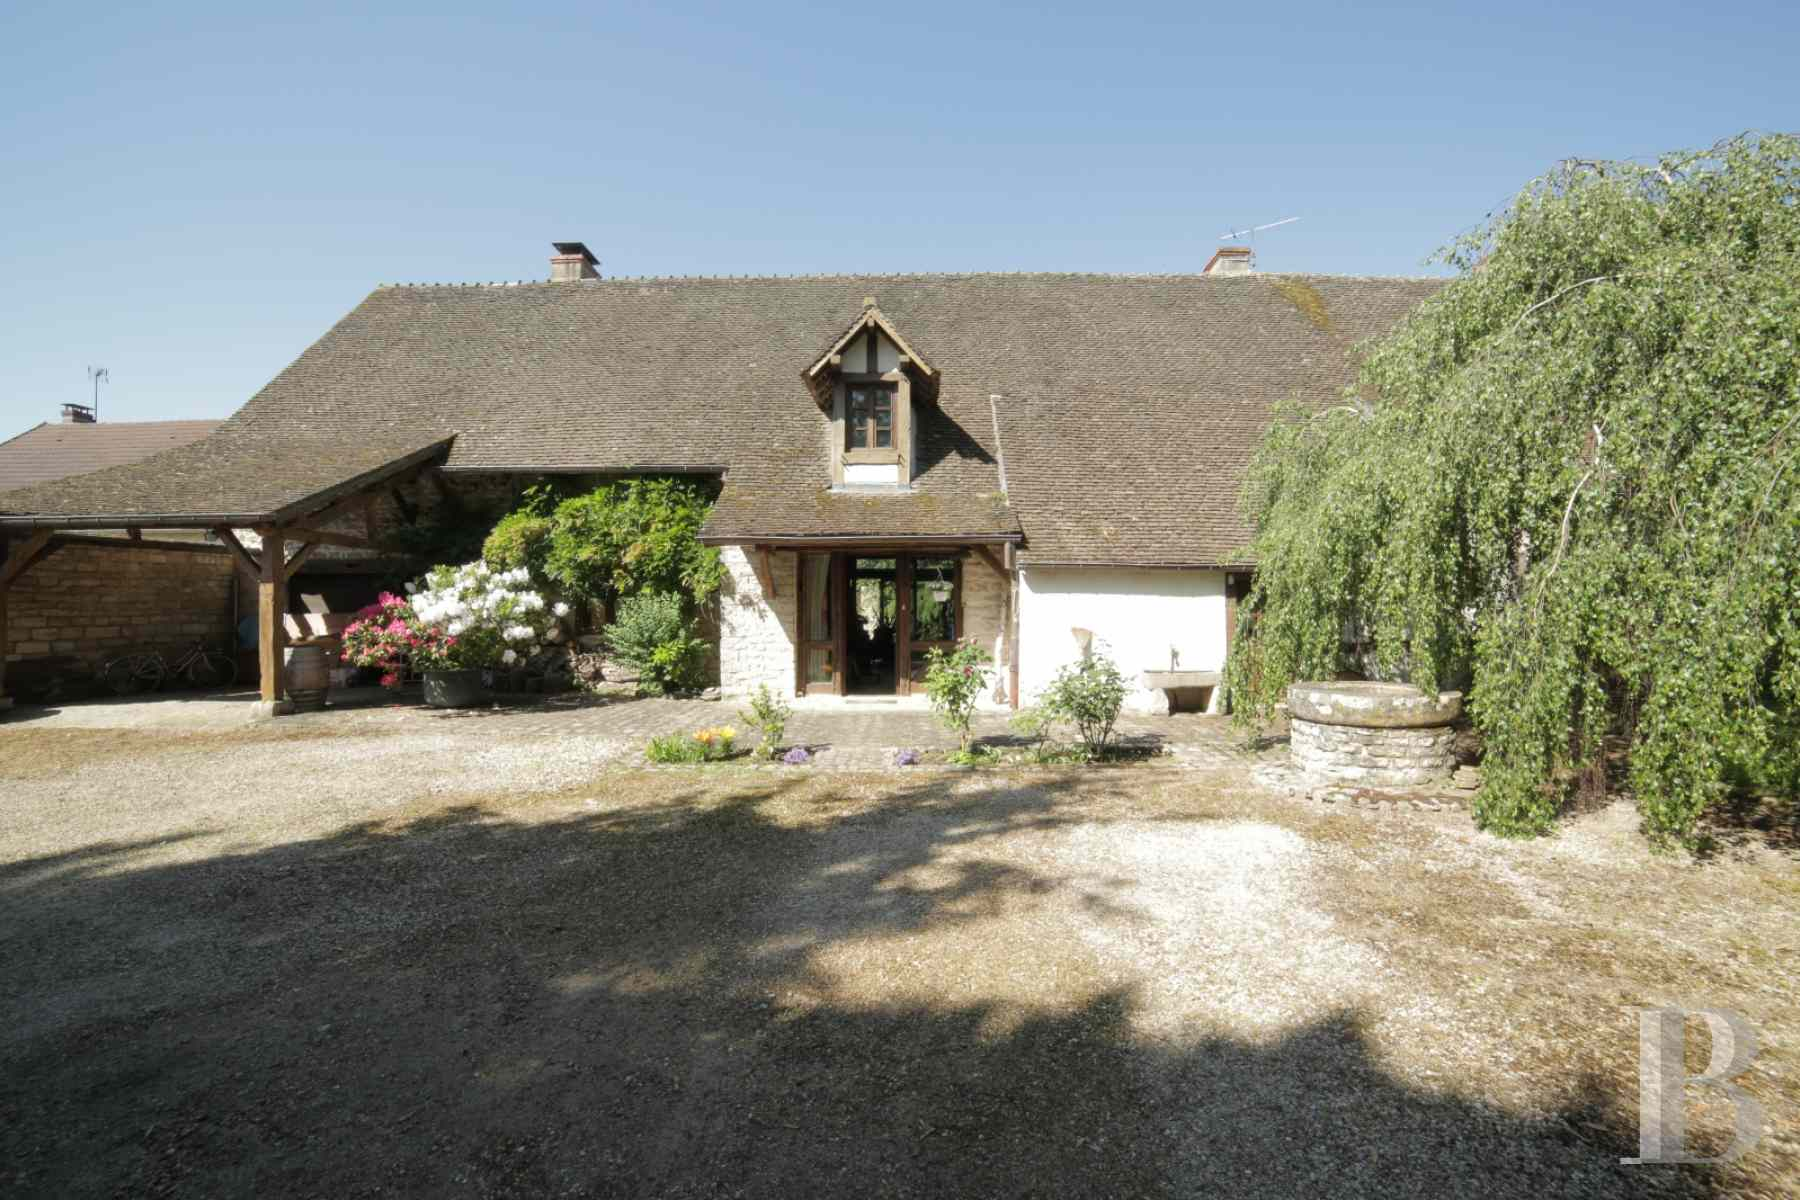 character properties France burgundy farmhouse 18th - 13 zoom